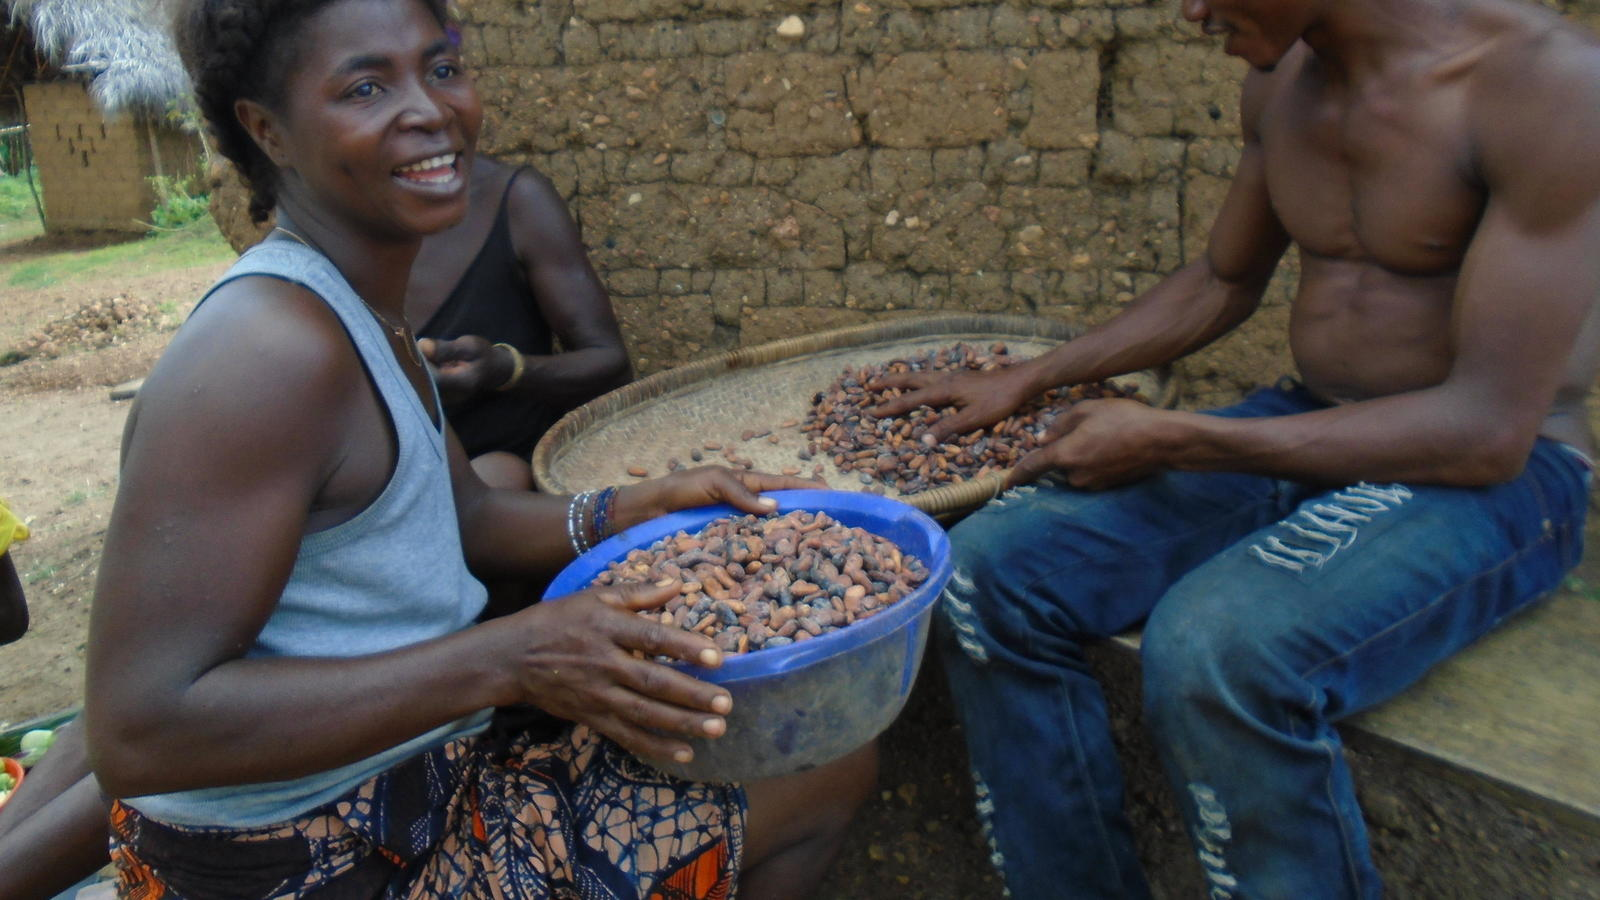 Ibrahim and Jenneh processing cacao in Tombohuaun.